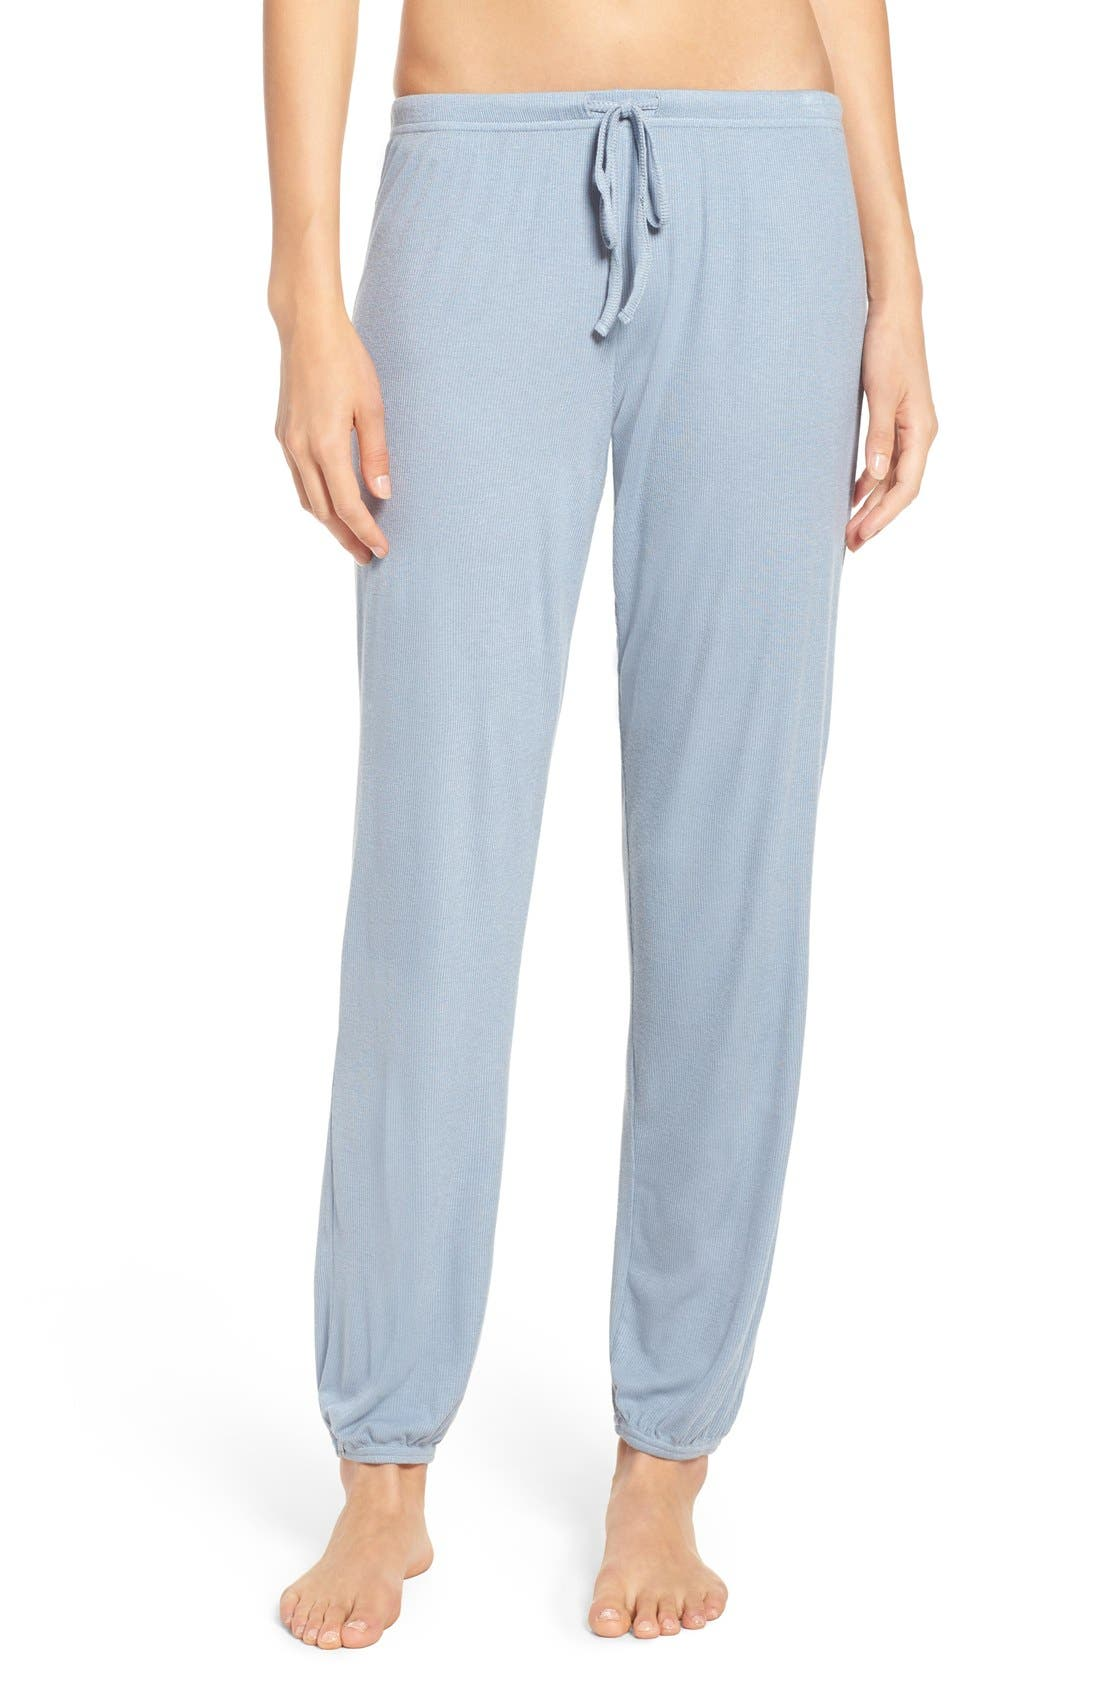 Barefoot Dreams® Sleep Pants